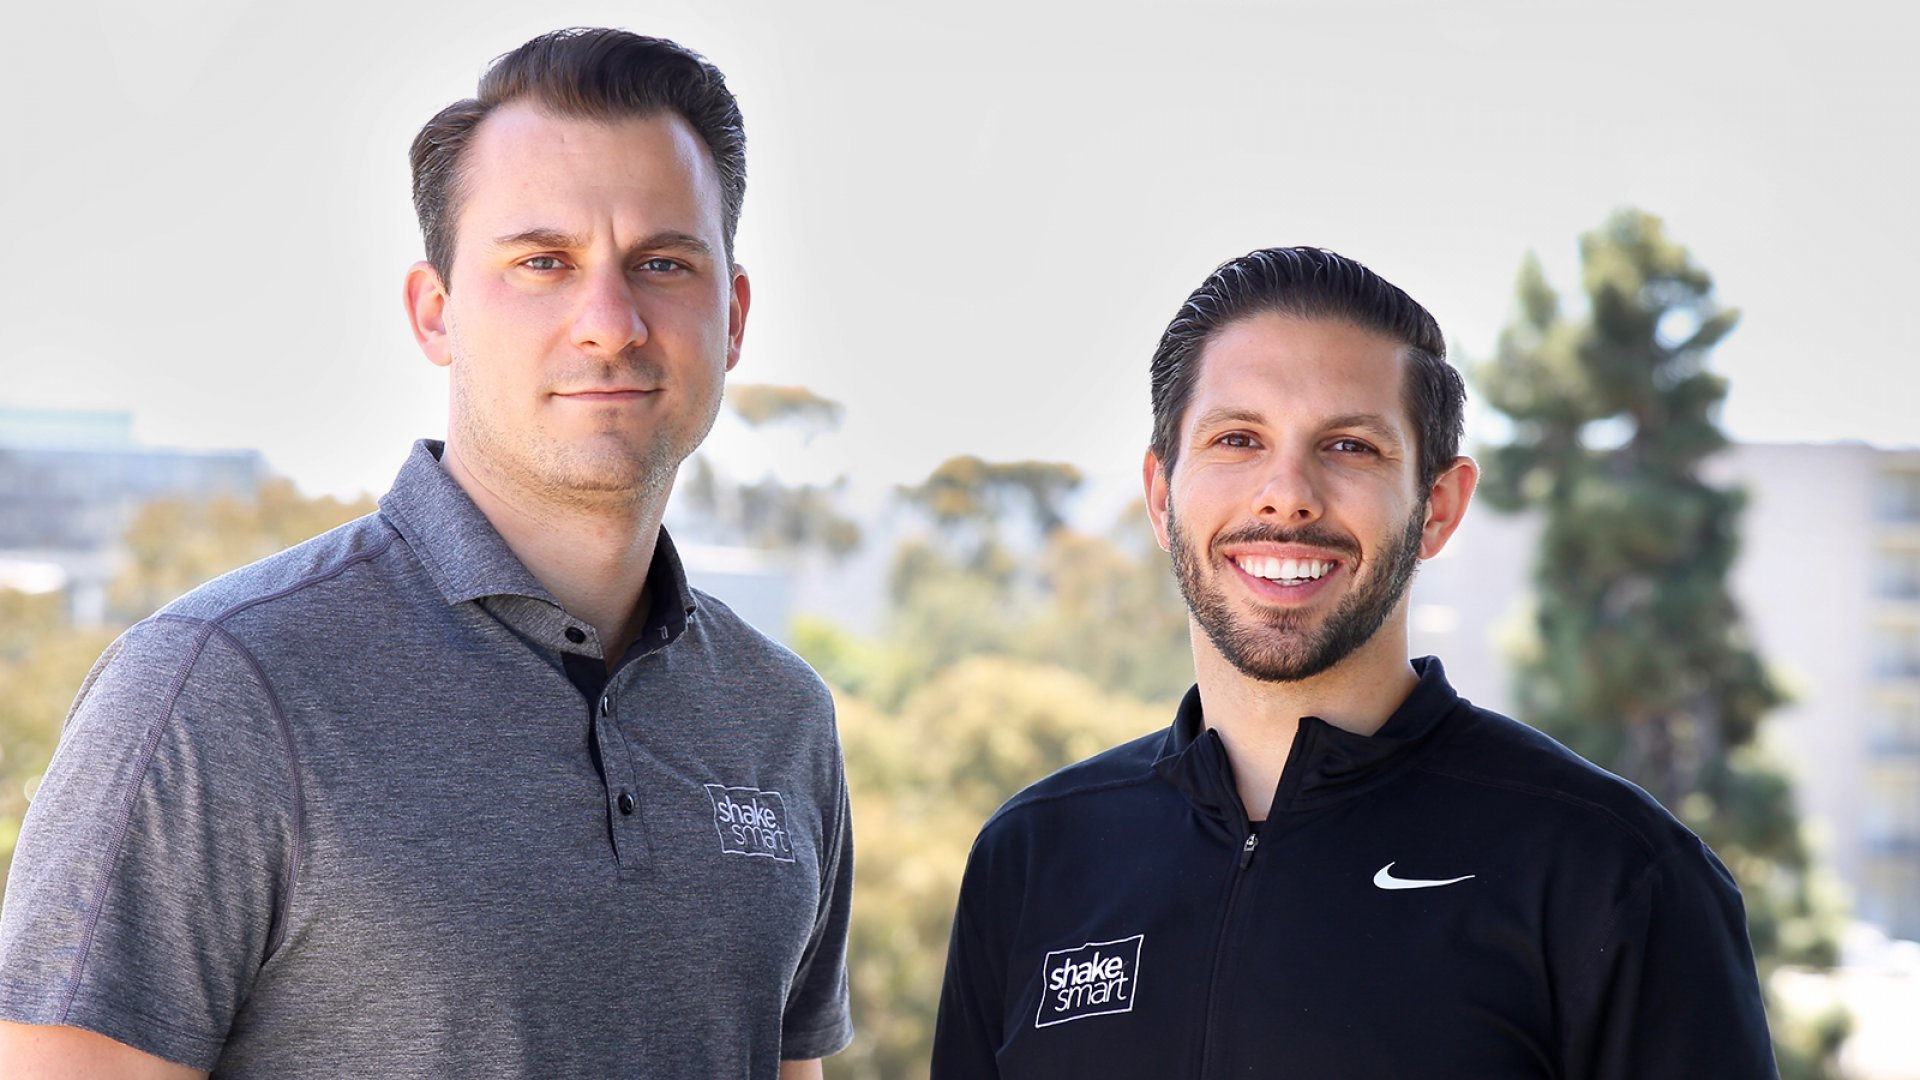 Shake Smart co-founders Martin Reiman and Kevin Gelfand.